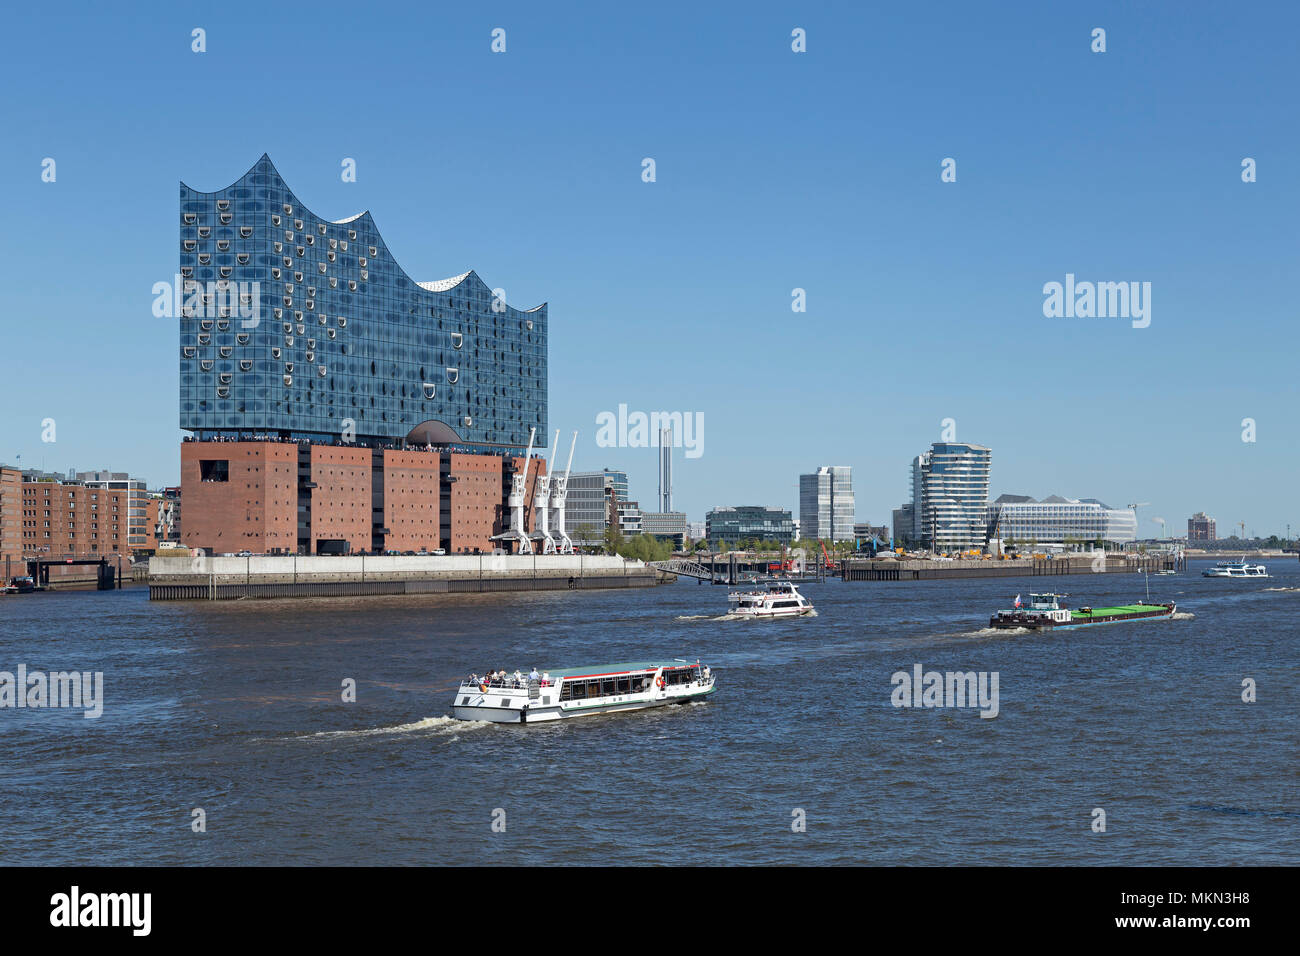 Elbe Philharmonic Hall, Harbour City, Hambourg, Allemagne Banque D'Images